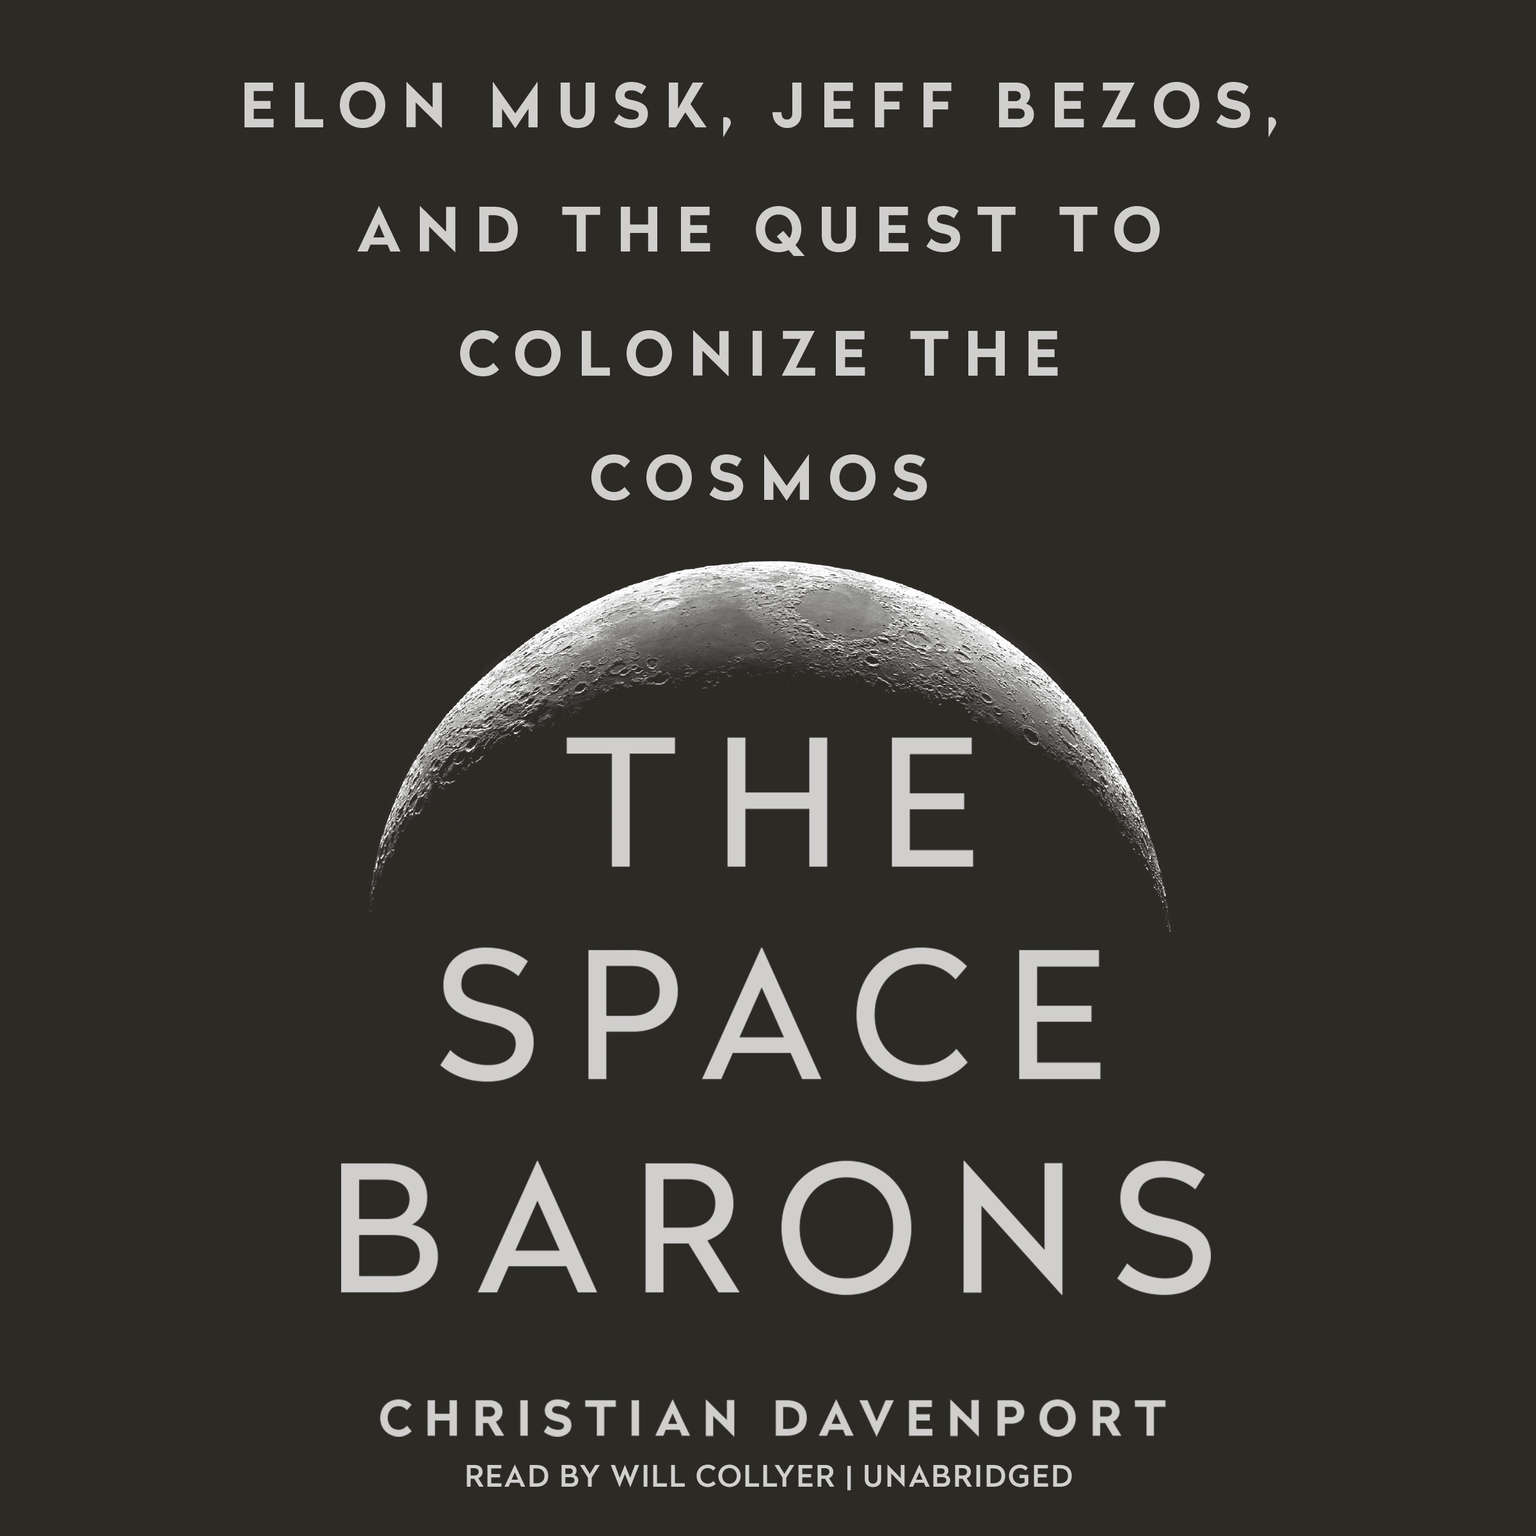 The Space Barons: Elon Musk, Jeff Bezos, and the Quest to Colonize the Cosmos Audiobook, by Christian Davenport